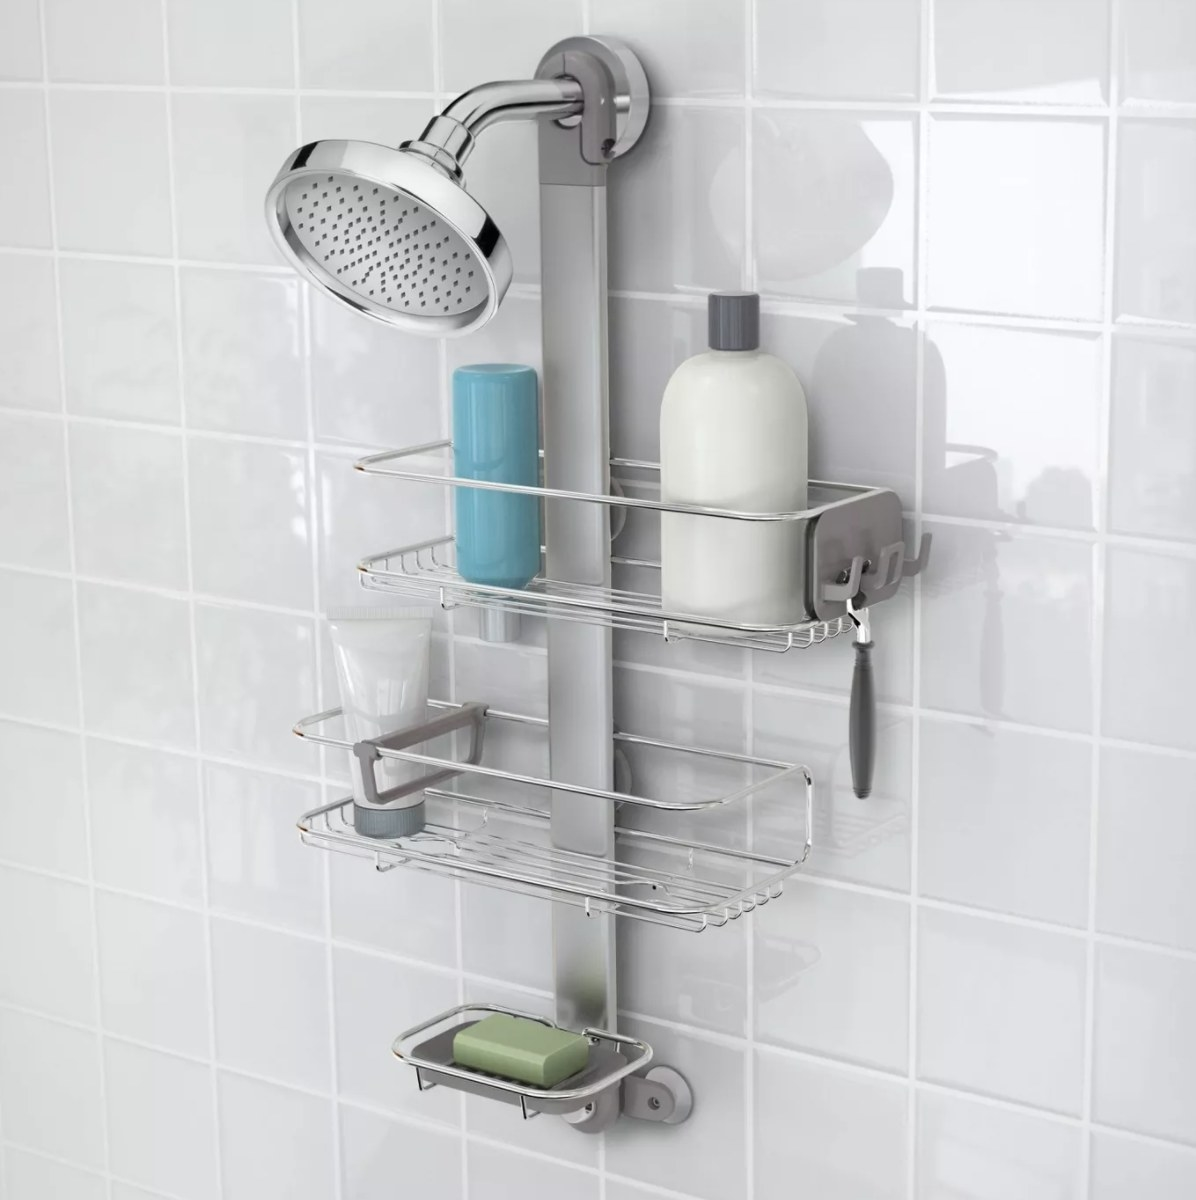 The steel shower caddy with two shelves and a soap dish